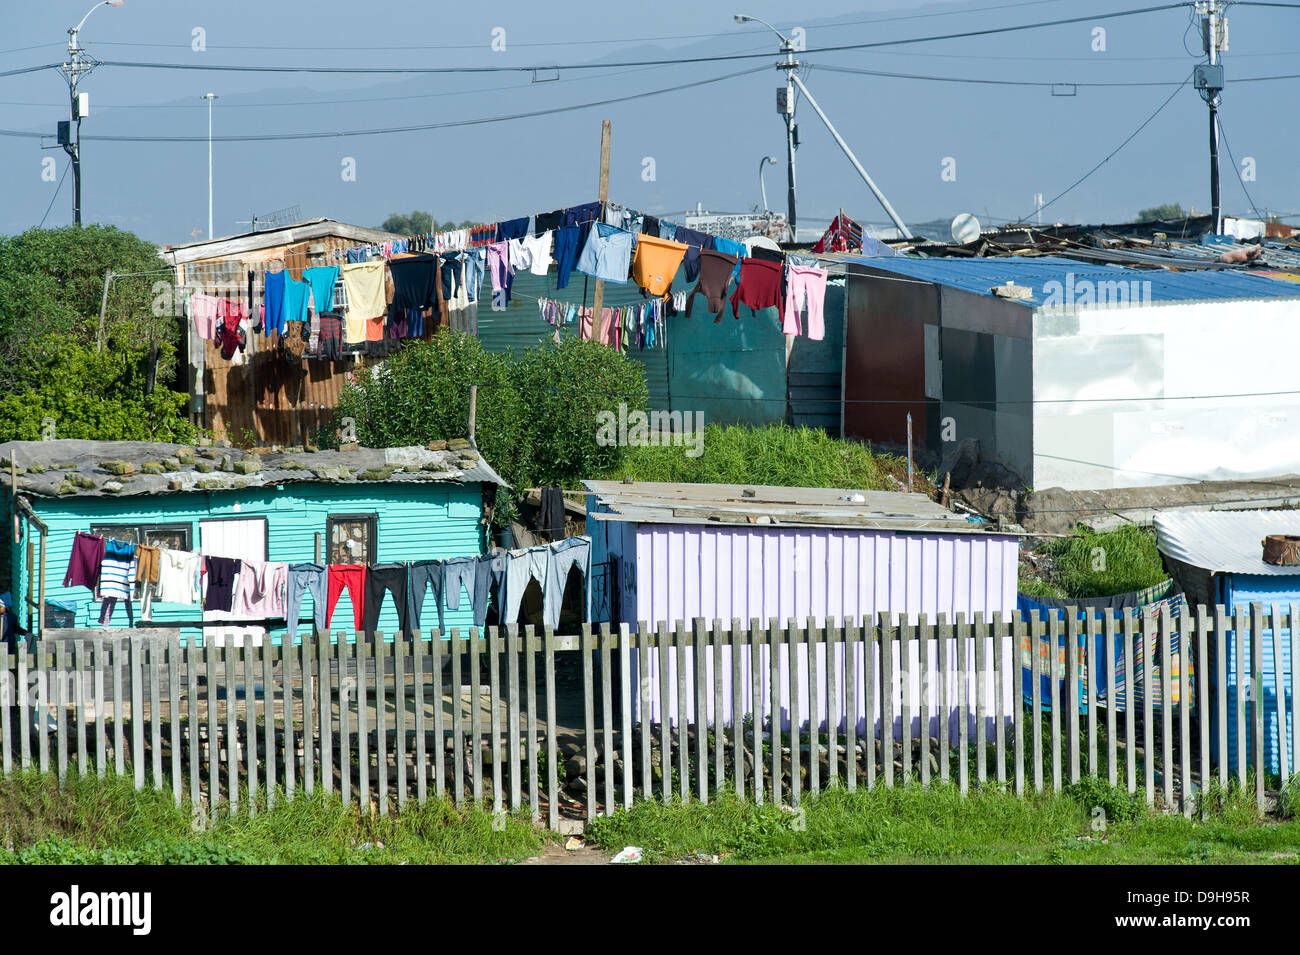 Township in Gugulethu area along N2 highway, Cape Town, South Africa - Stock Image